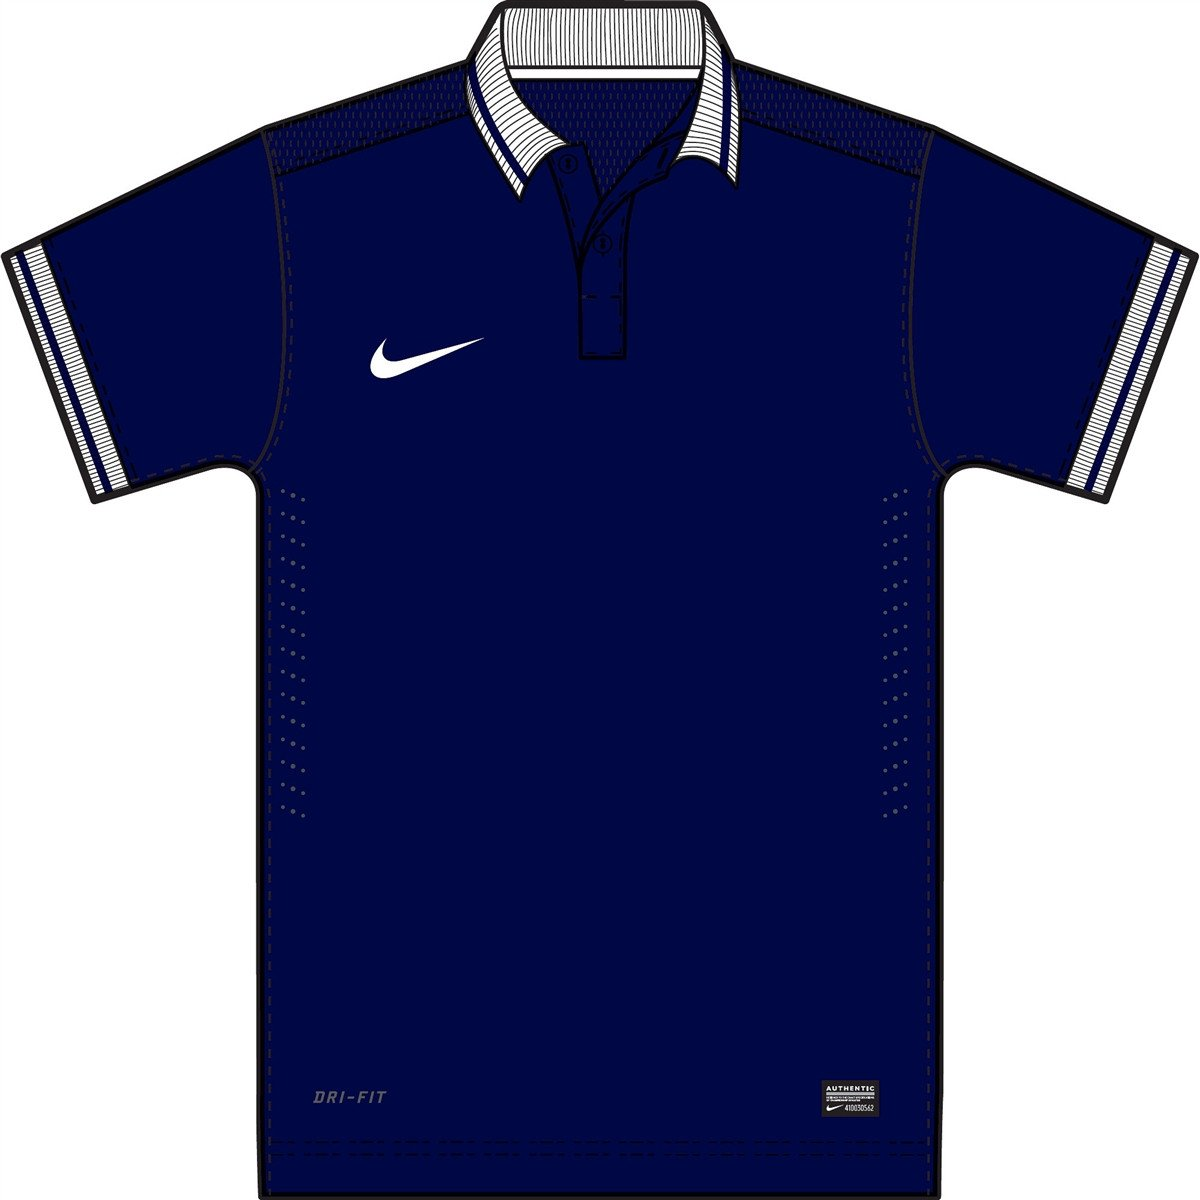 Blue T Shirt Template Navy Blue Polo T Shirt Template